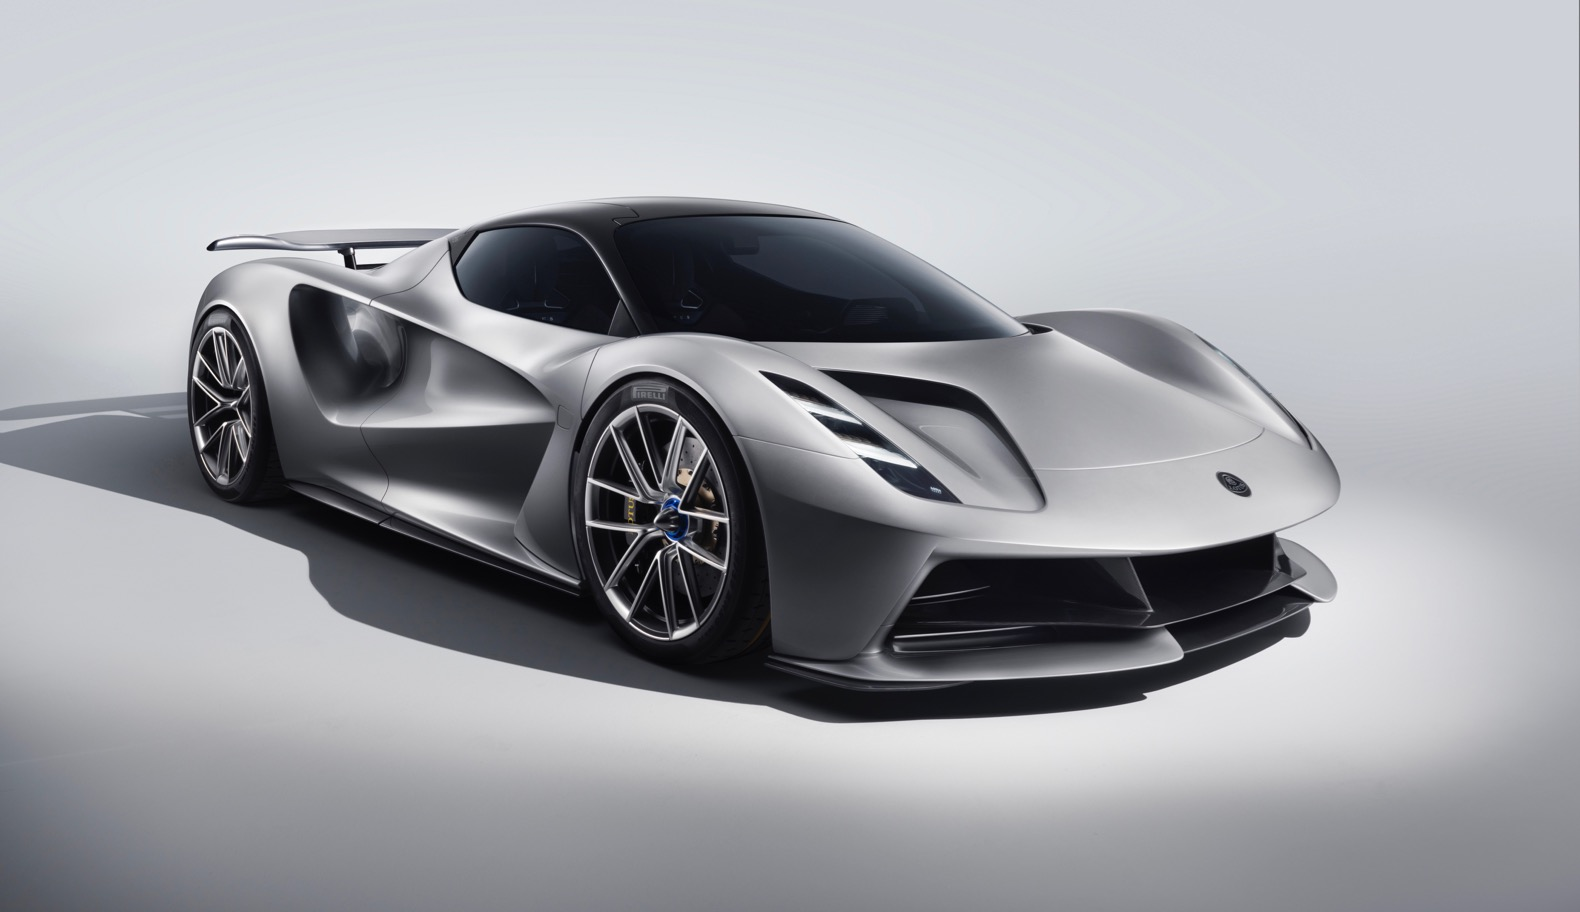 Lotus Evija electric hypercar arrives with almost 2,000 HP